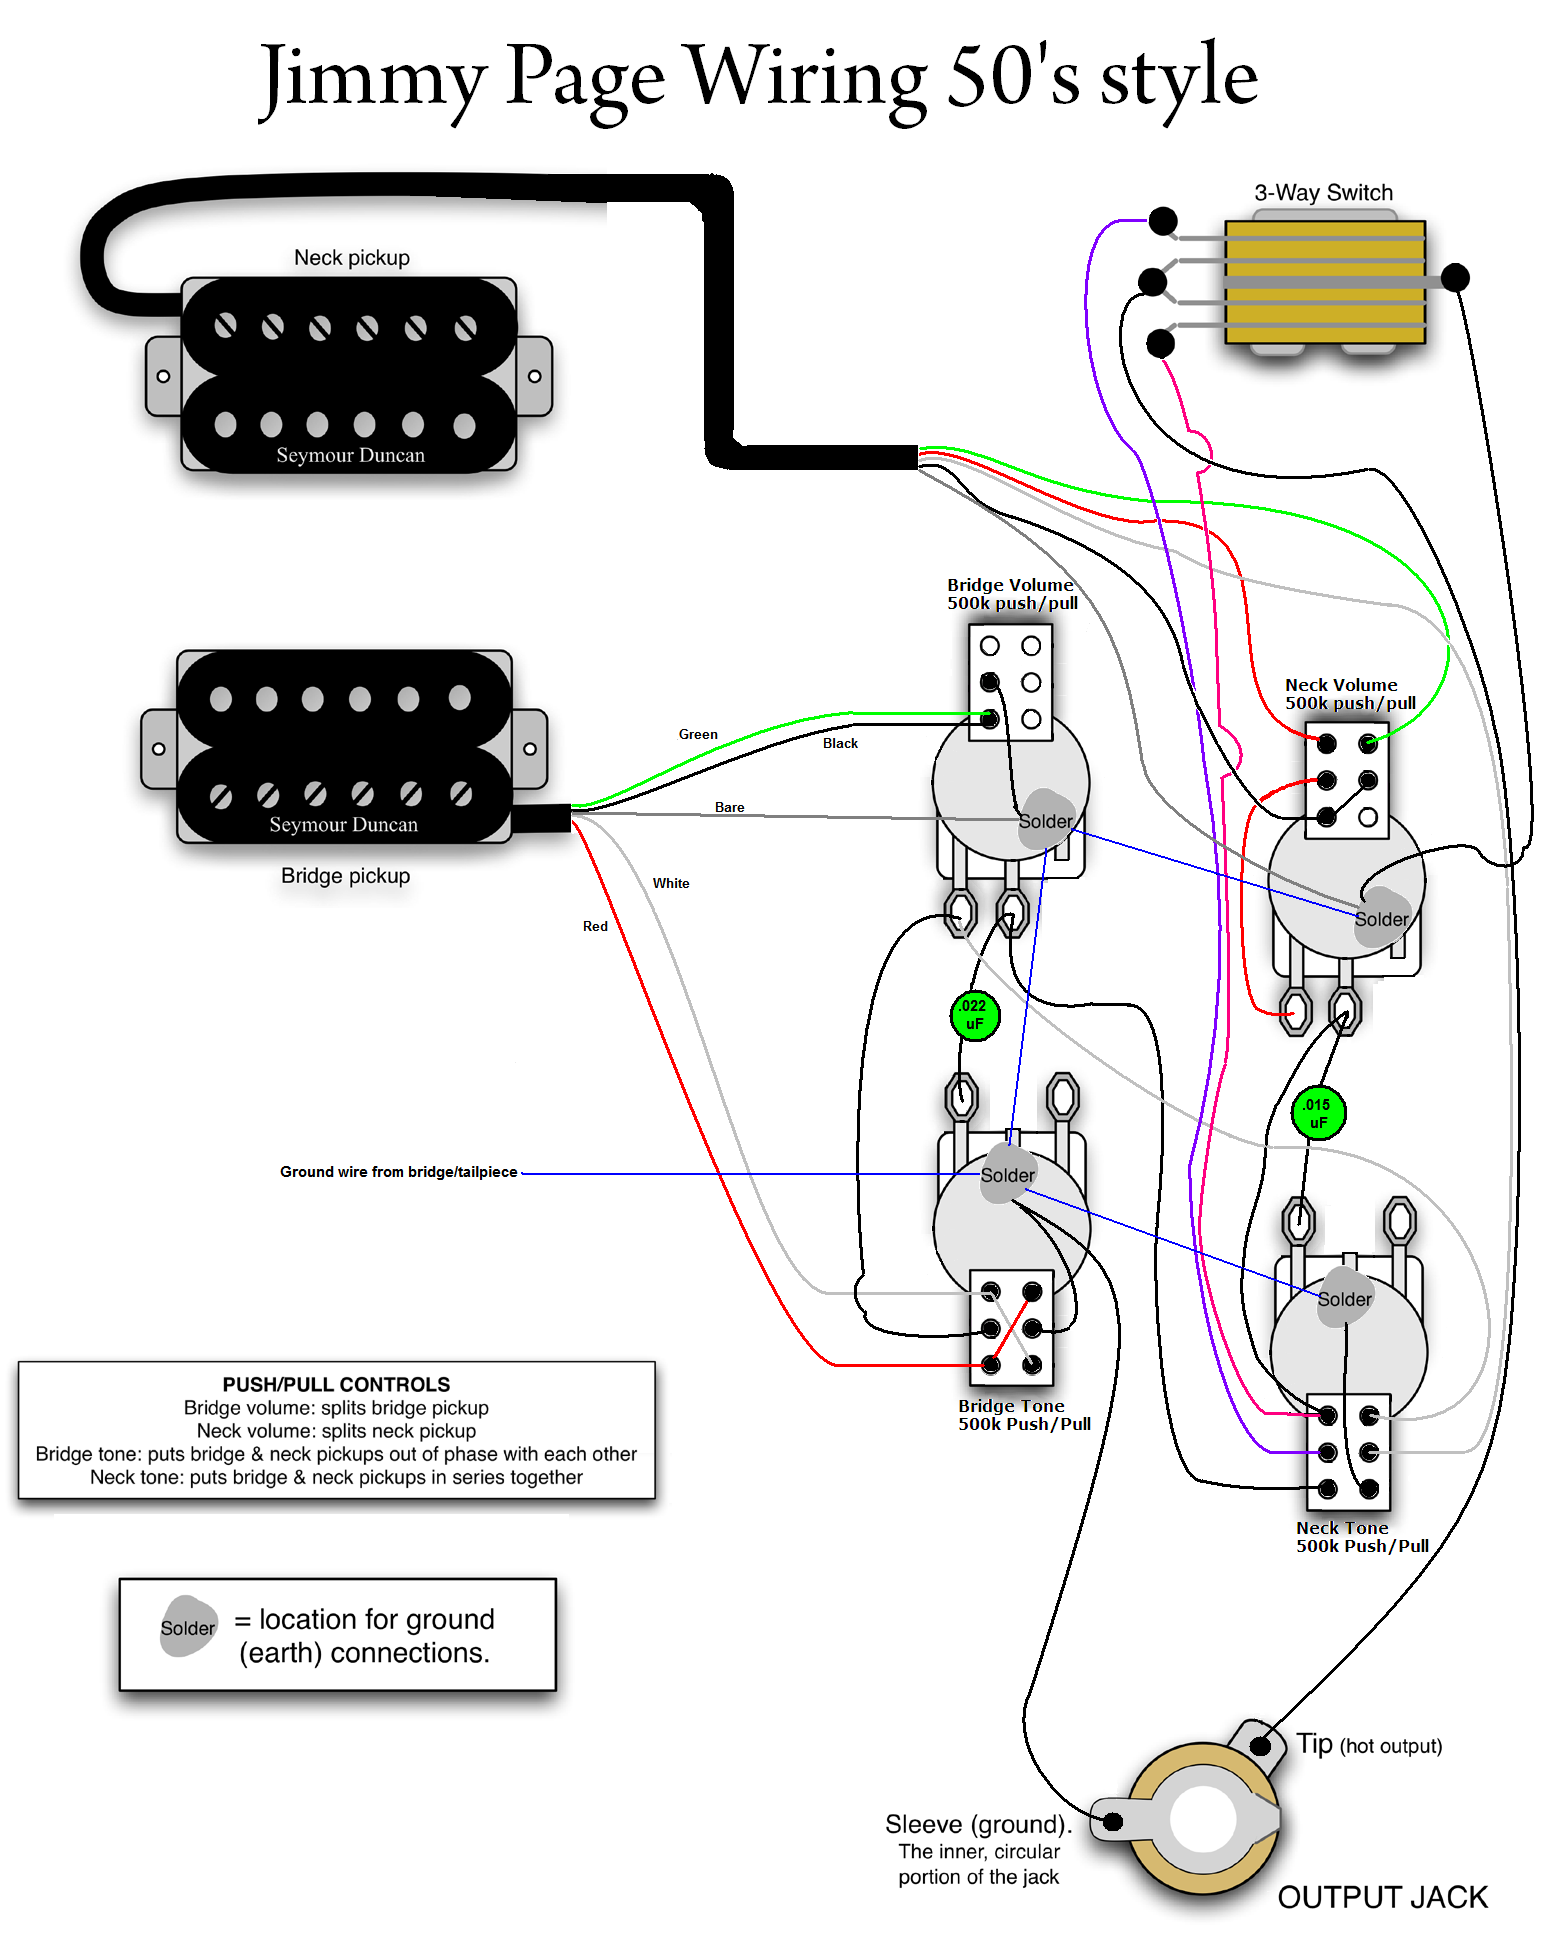 medium resolution of jimmy page wiring diagram coil split simple wiring schema gibson les paul wiring schematic push pull coil tap wiring diagram jimmy page